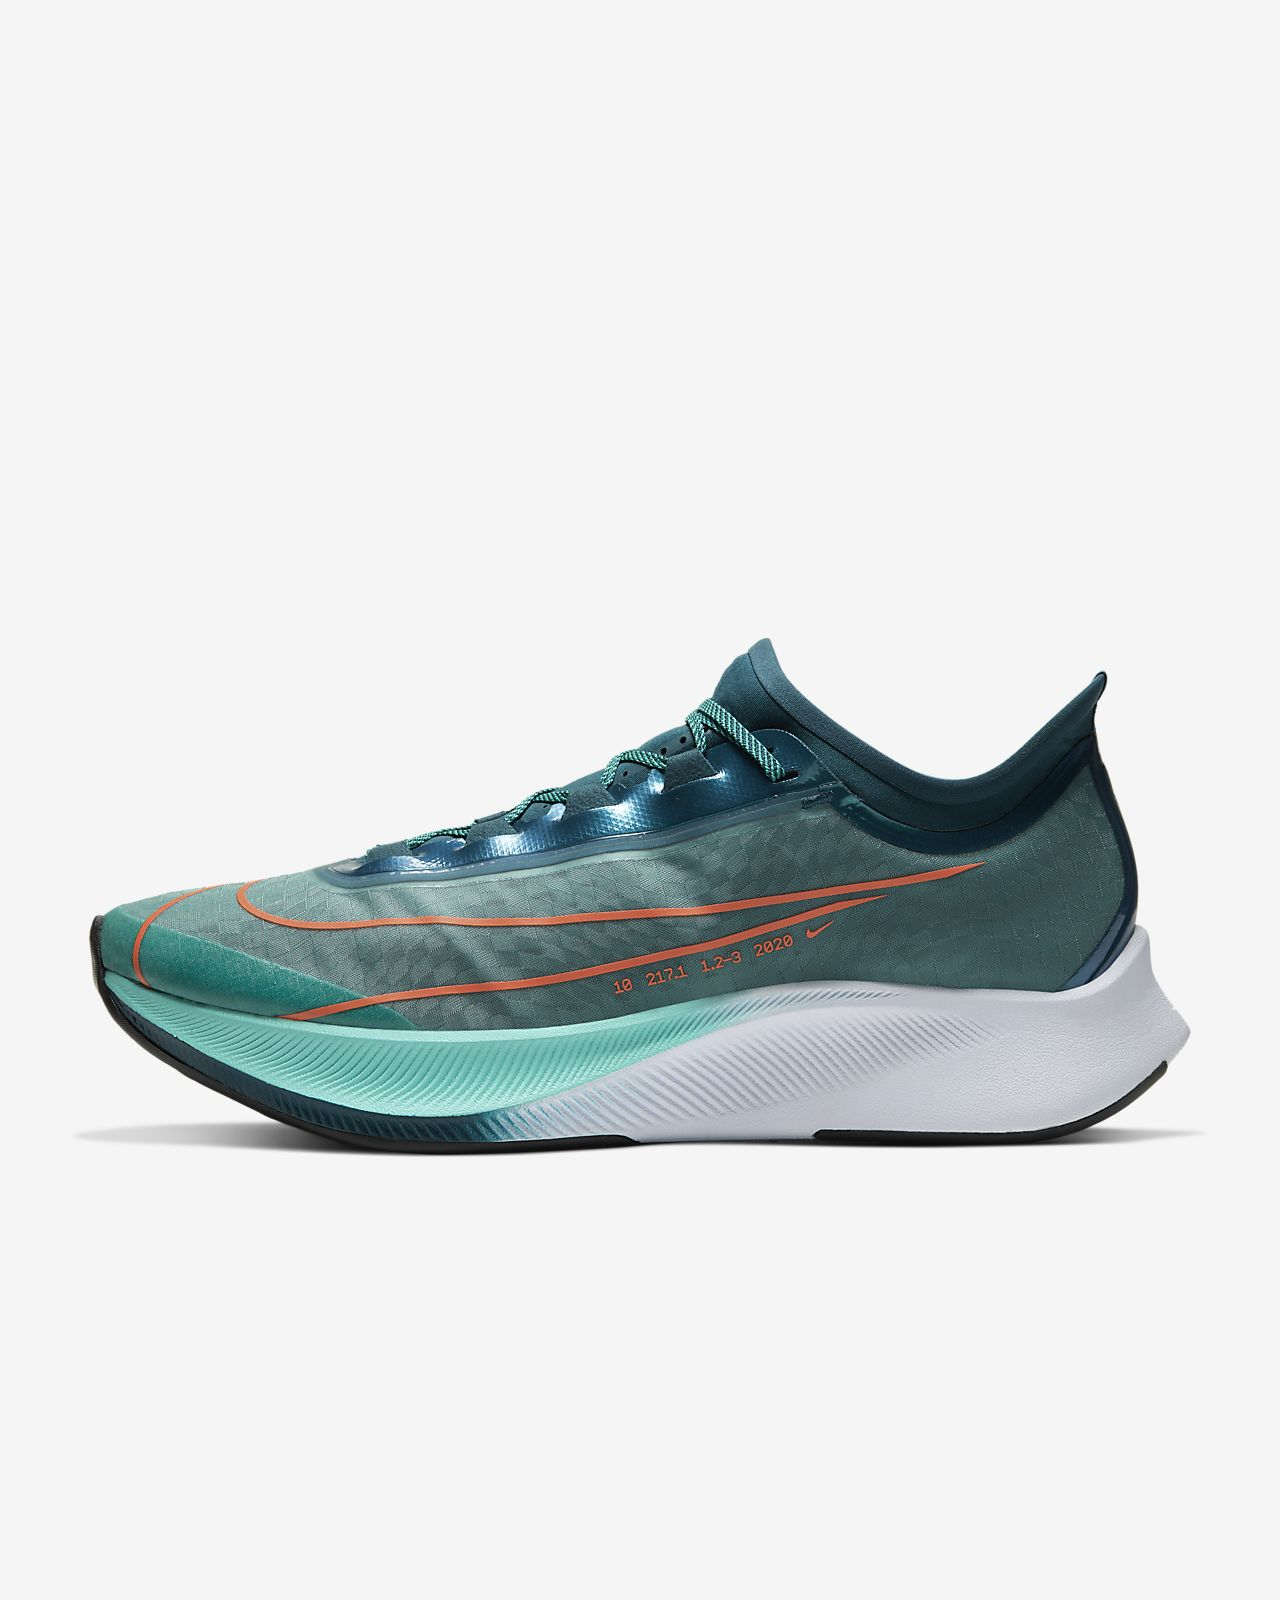 Chaussure de running Nike Zoom Fly 3 Premium pour Homme